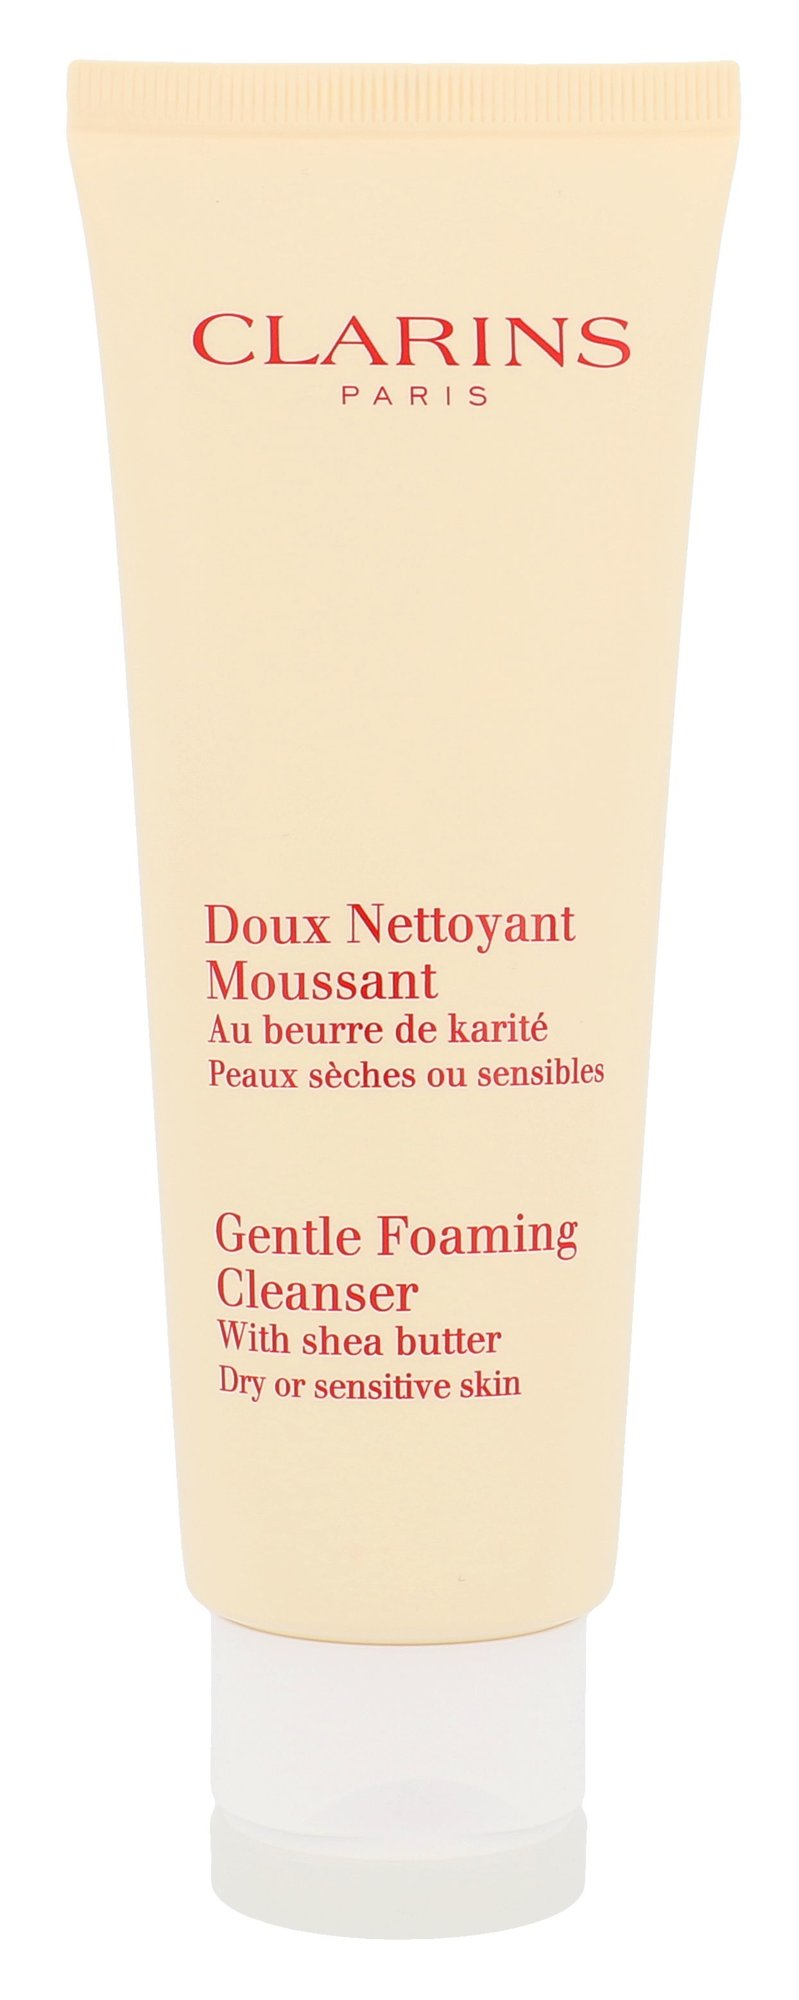 Clarins Gentle Foaming Cleanser Cosmetic 125ml